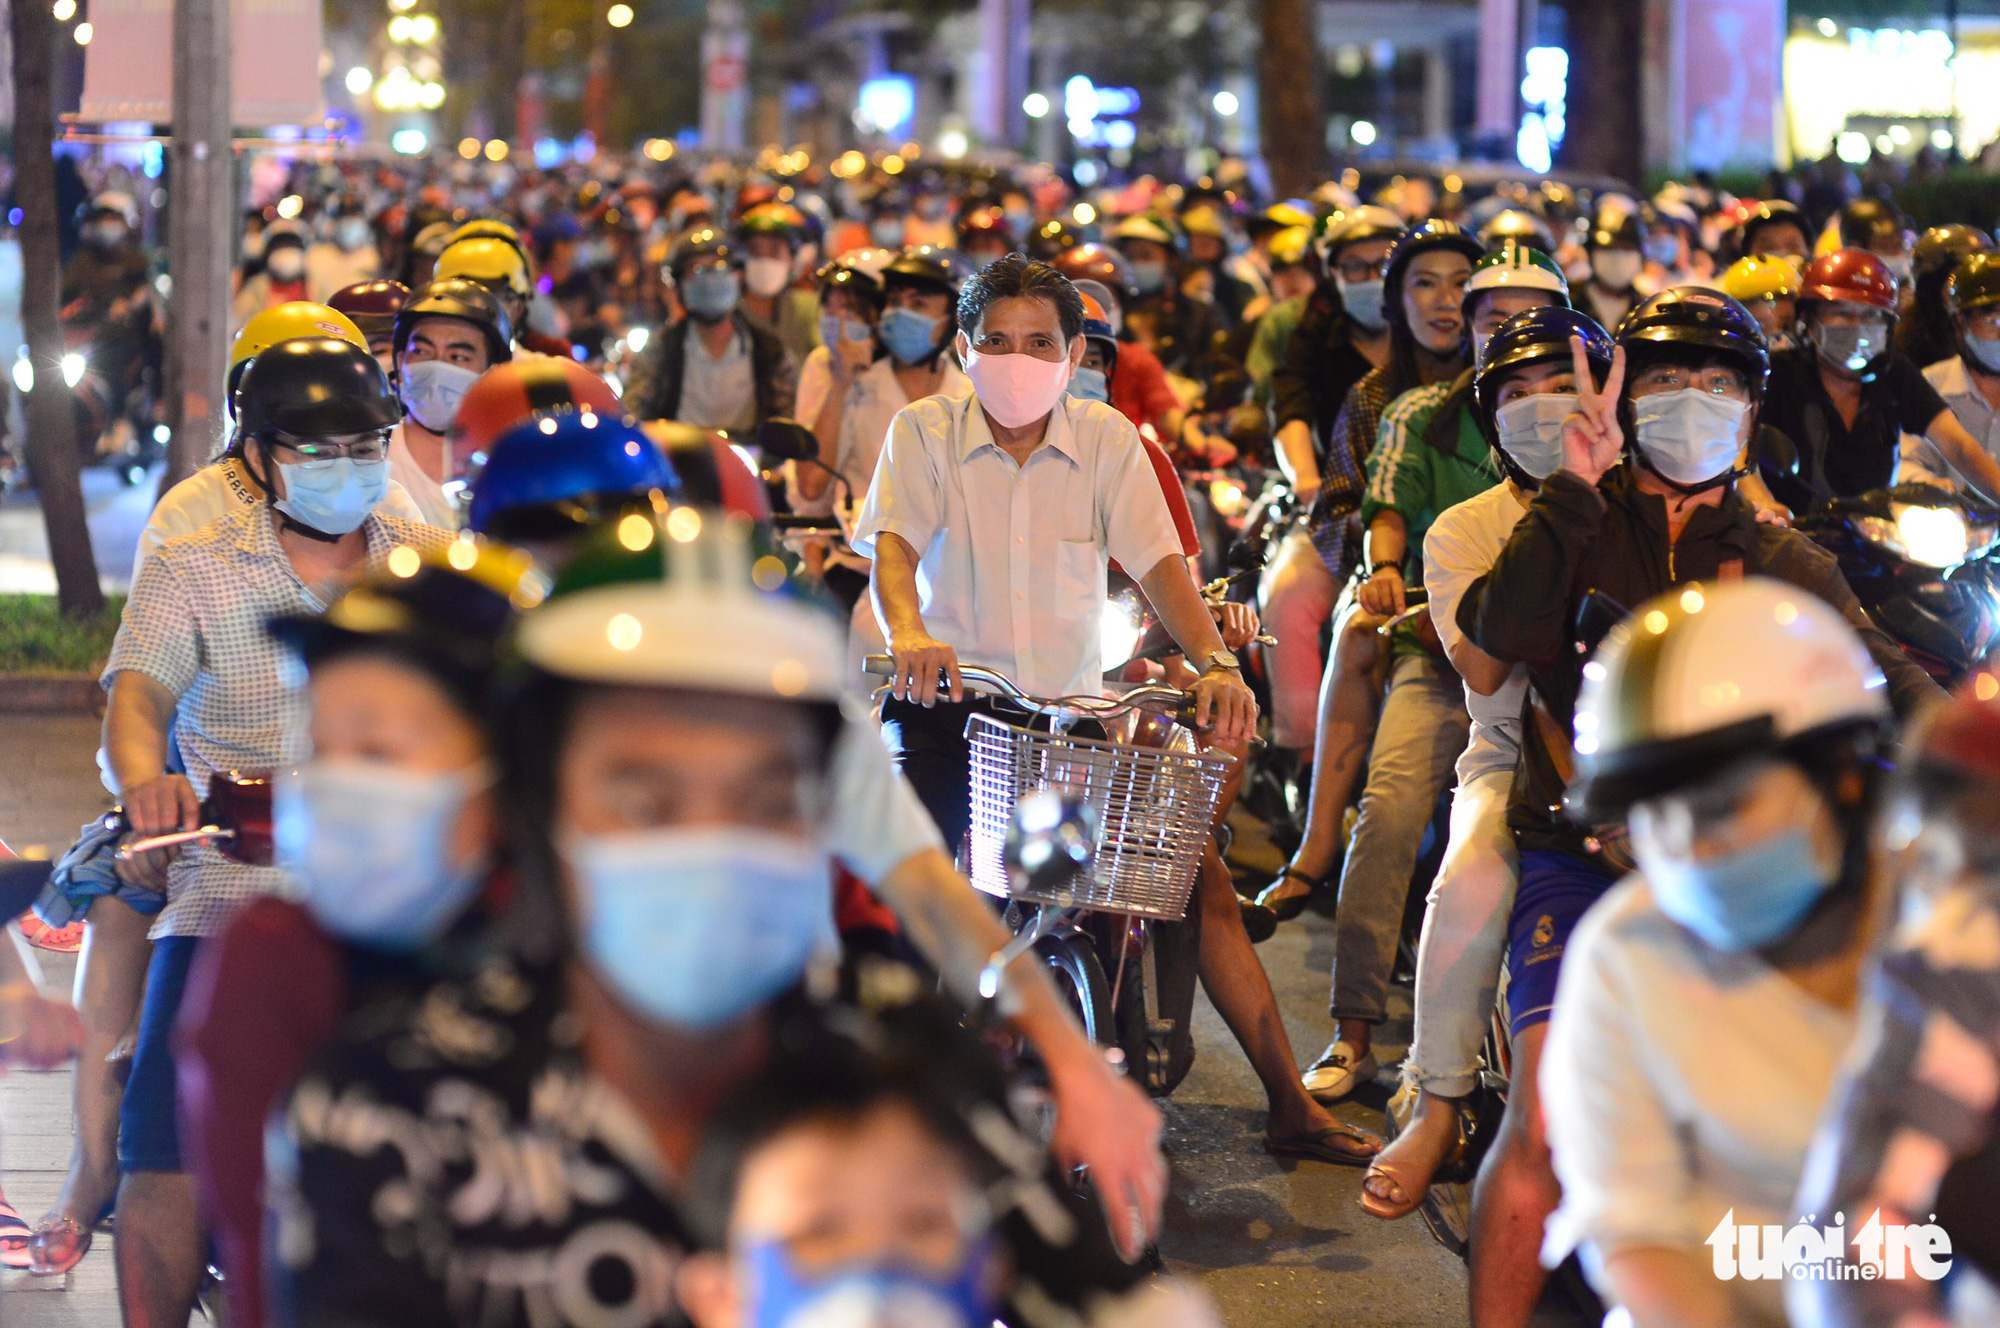 Dong Khoi Street in District 1, Ho Chi Minh City is congested on December 24, 2020. Photo: Quang Dinh / Tuoi Tre